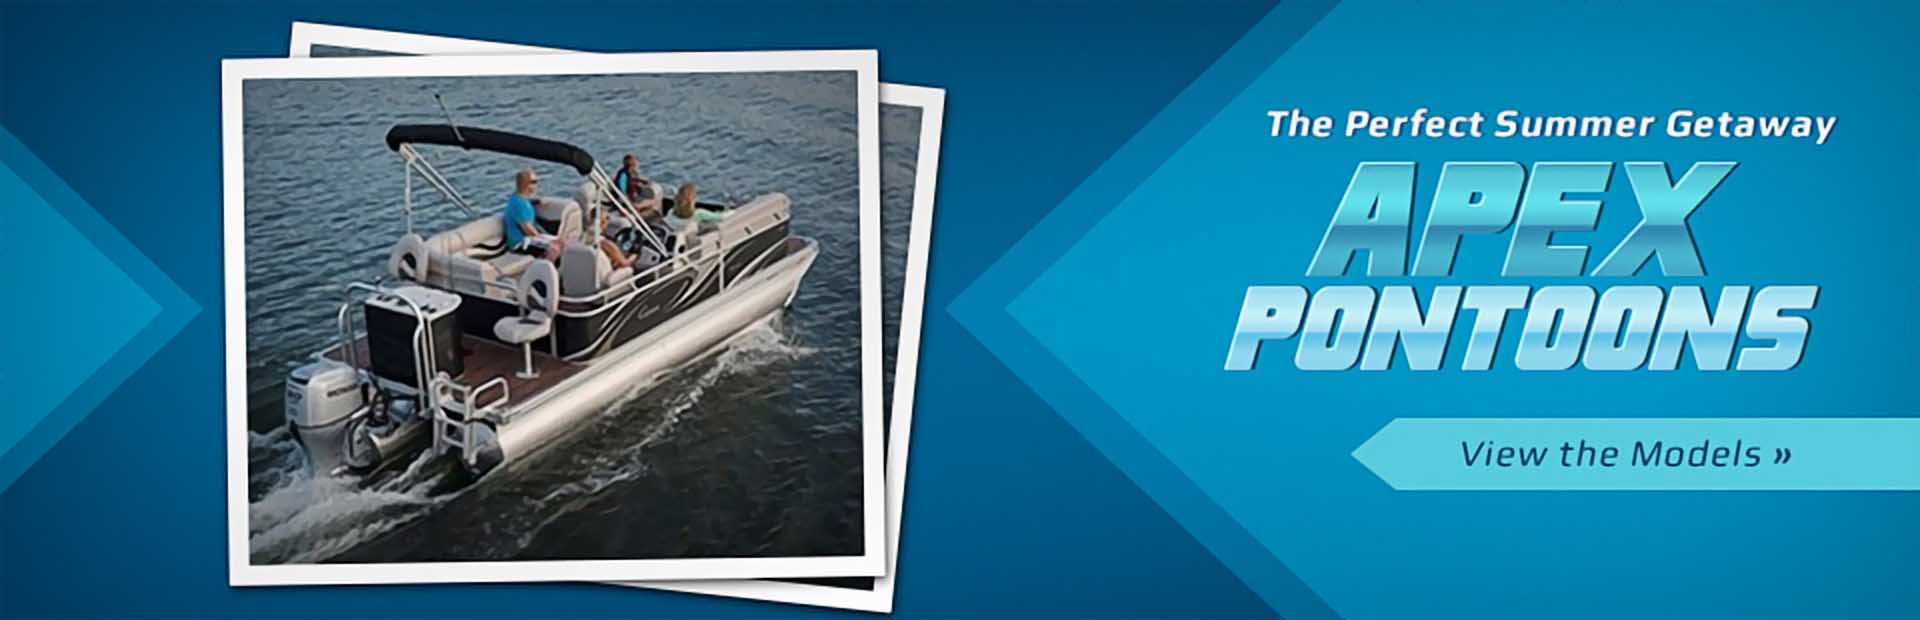 Apex Pontoons: Click here to view the models.